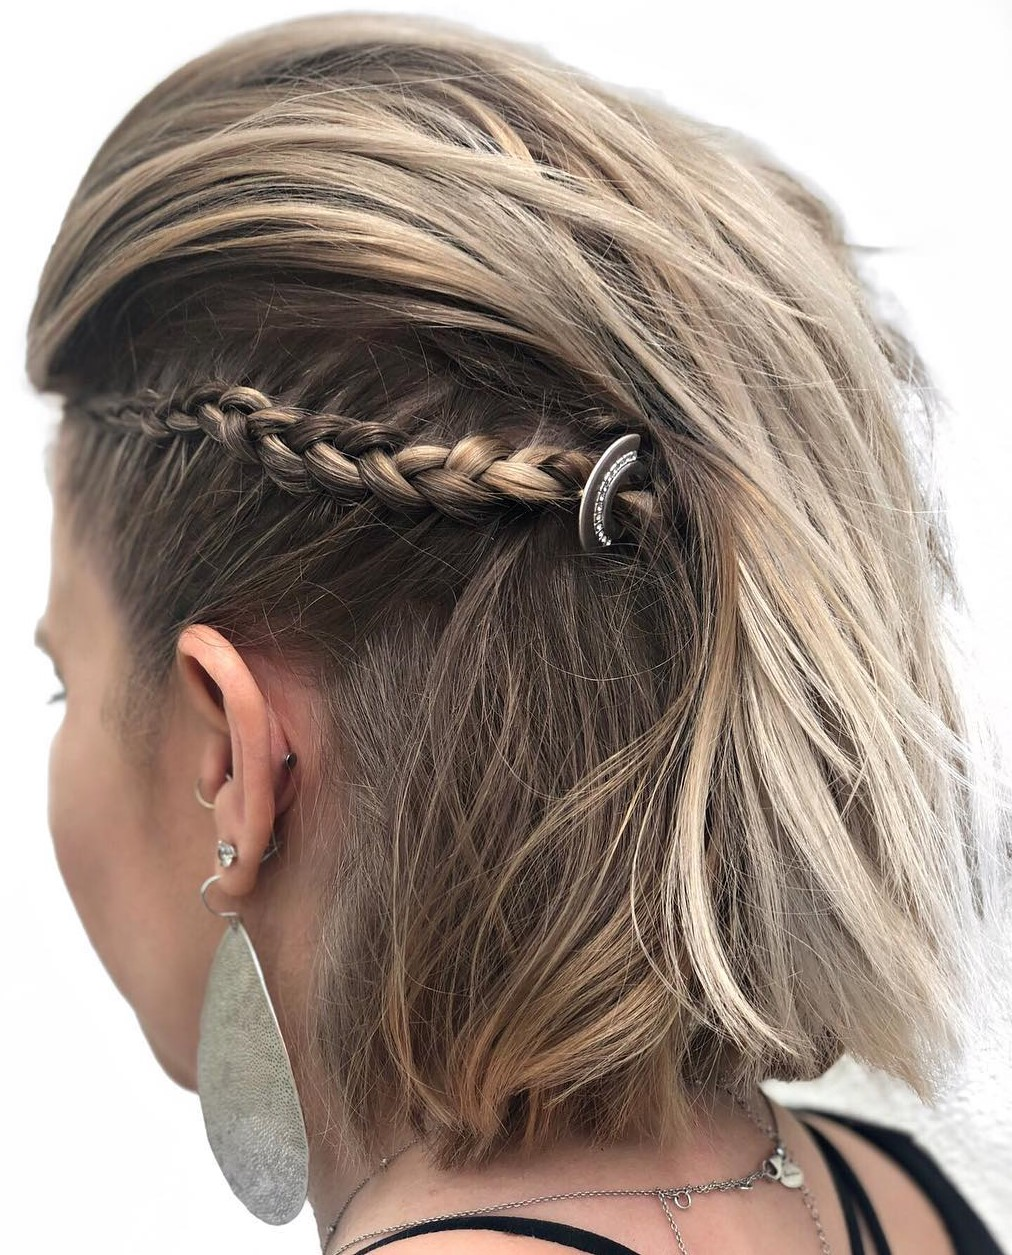 Short Hair Half Updo with a Side Braid